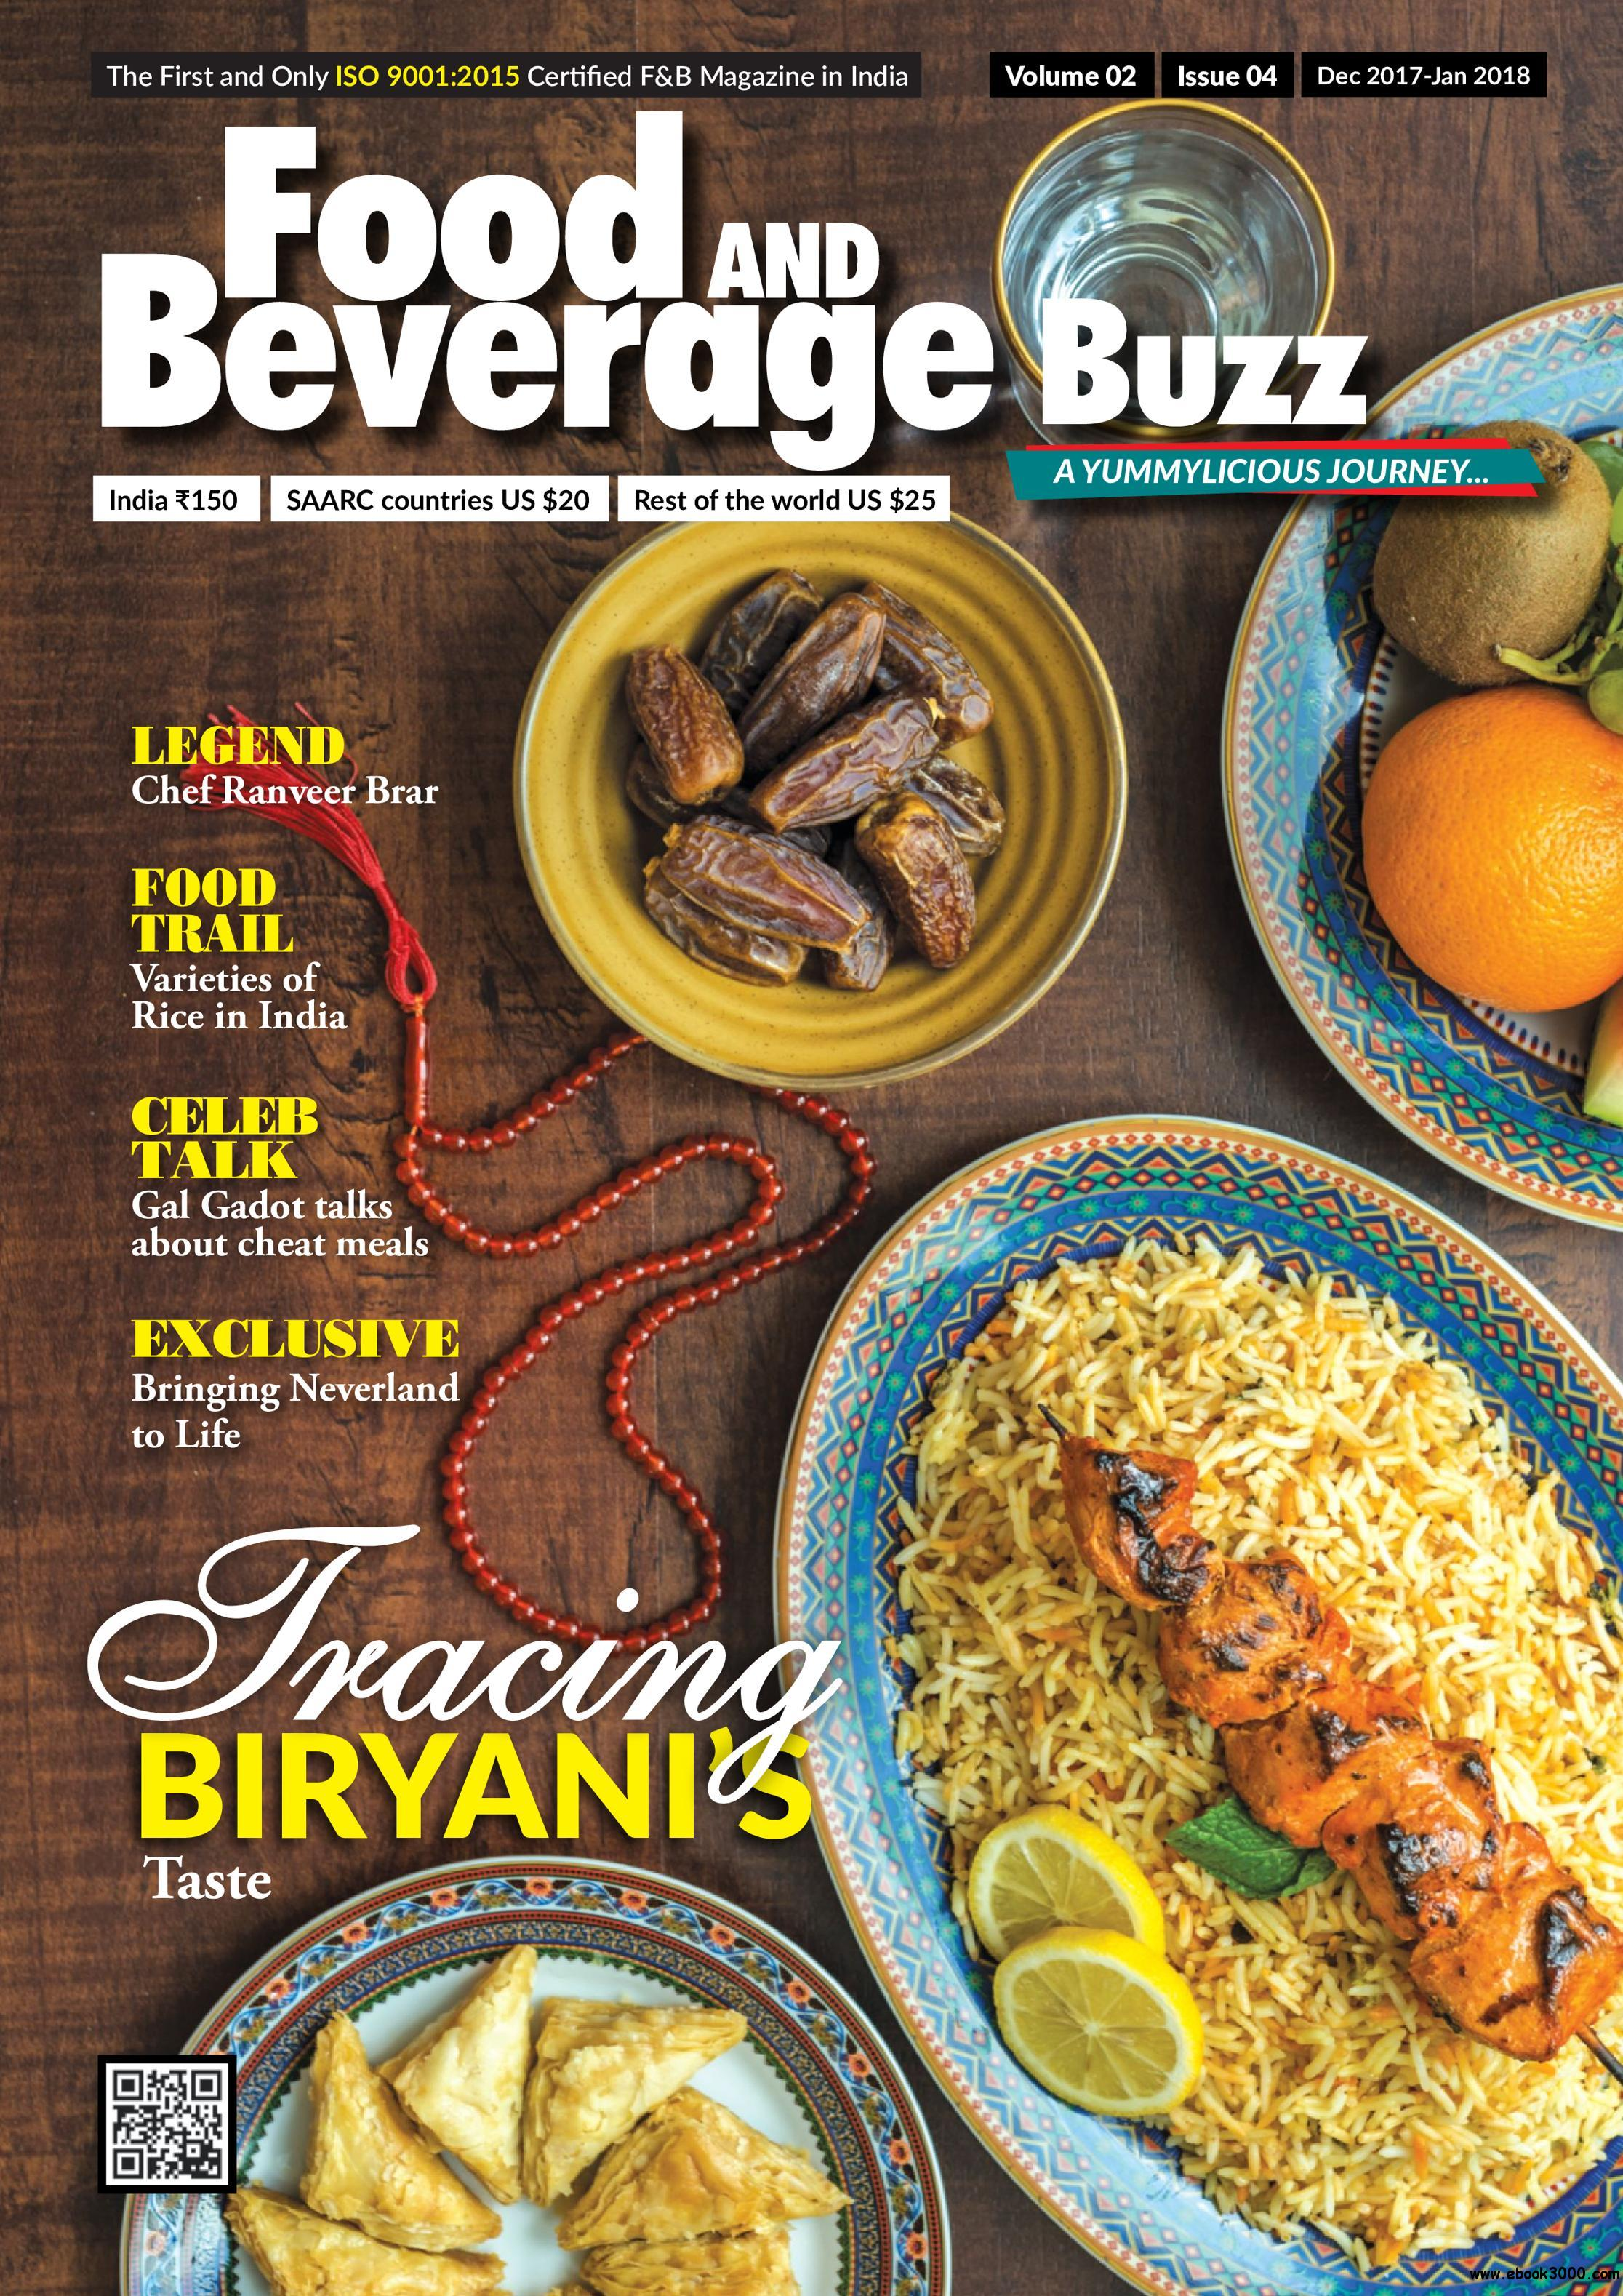 Food and beverage buzz december 2017 free ebooks download food and beverage buzz december 2017 forumfinder Image collections